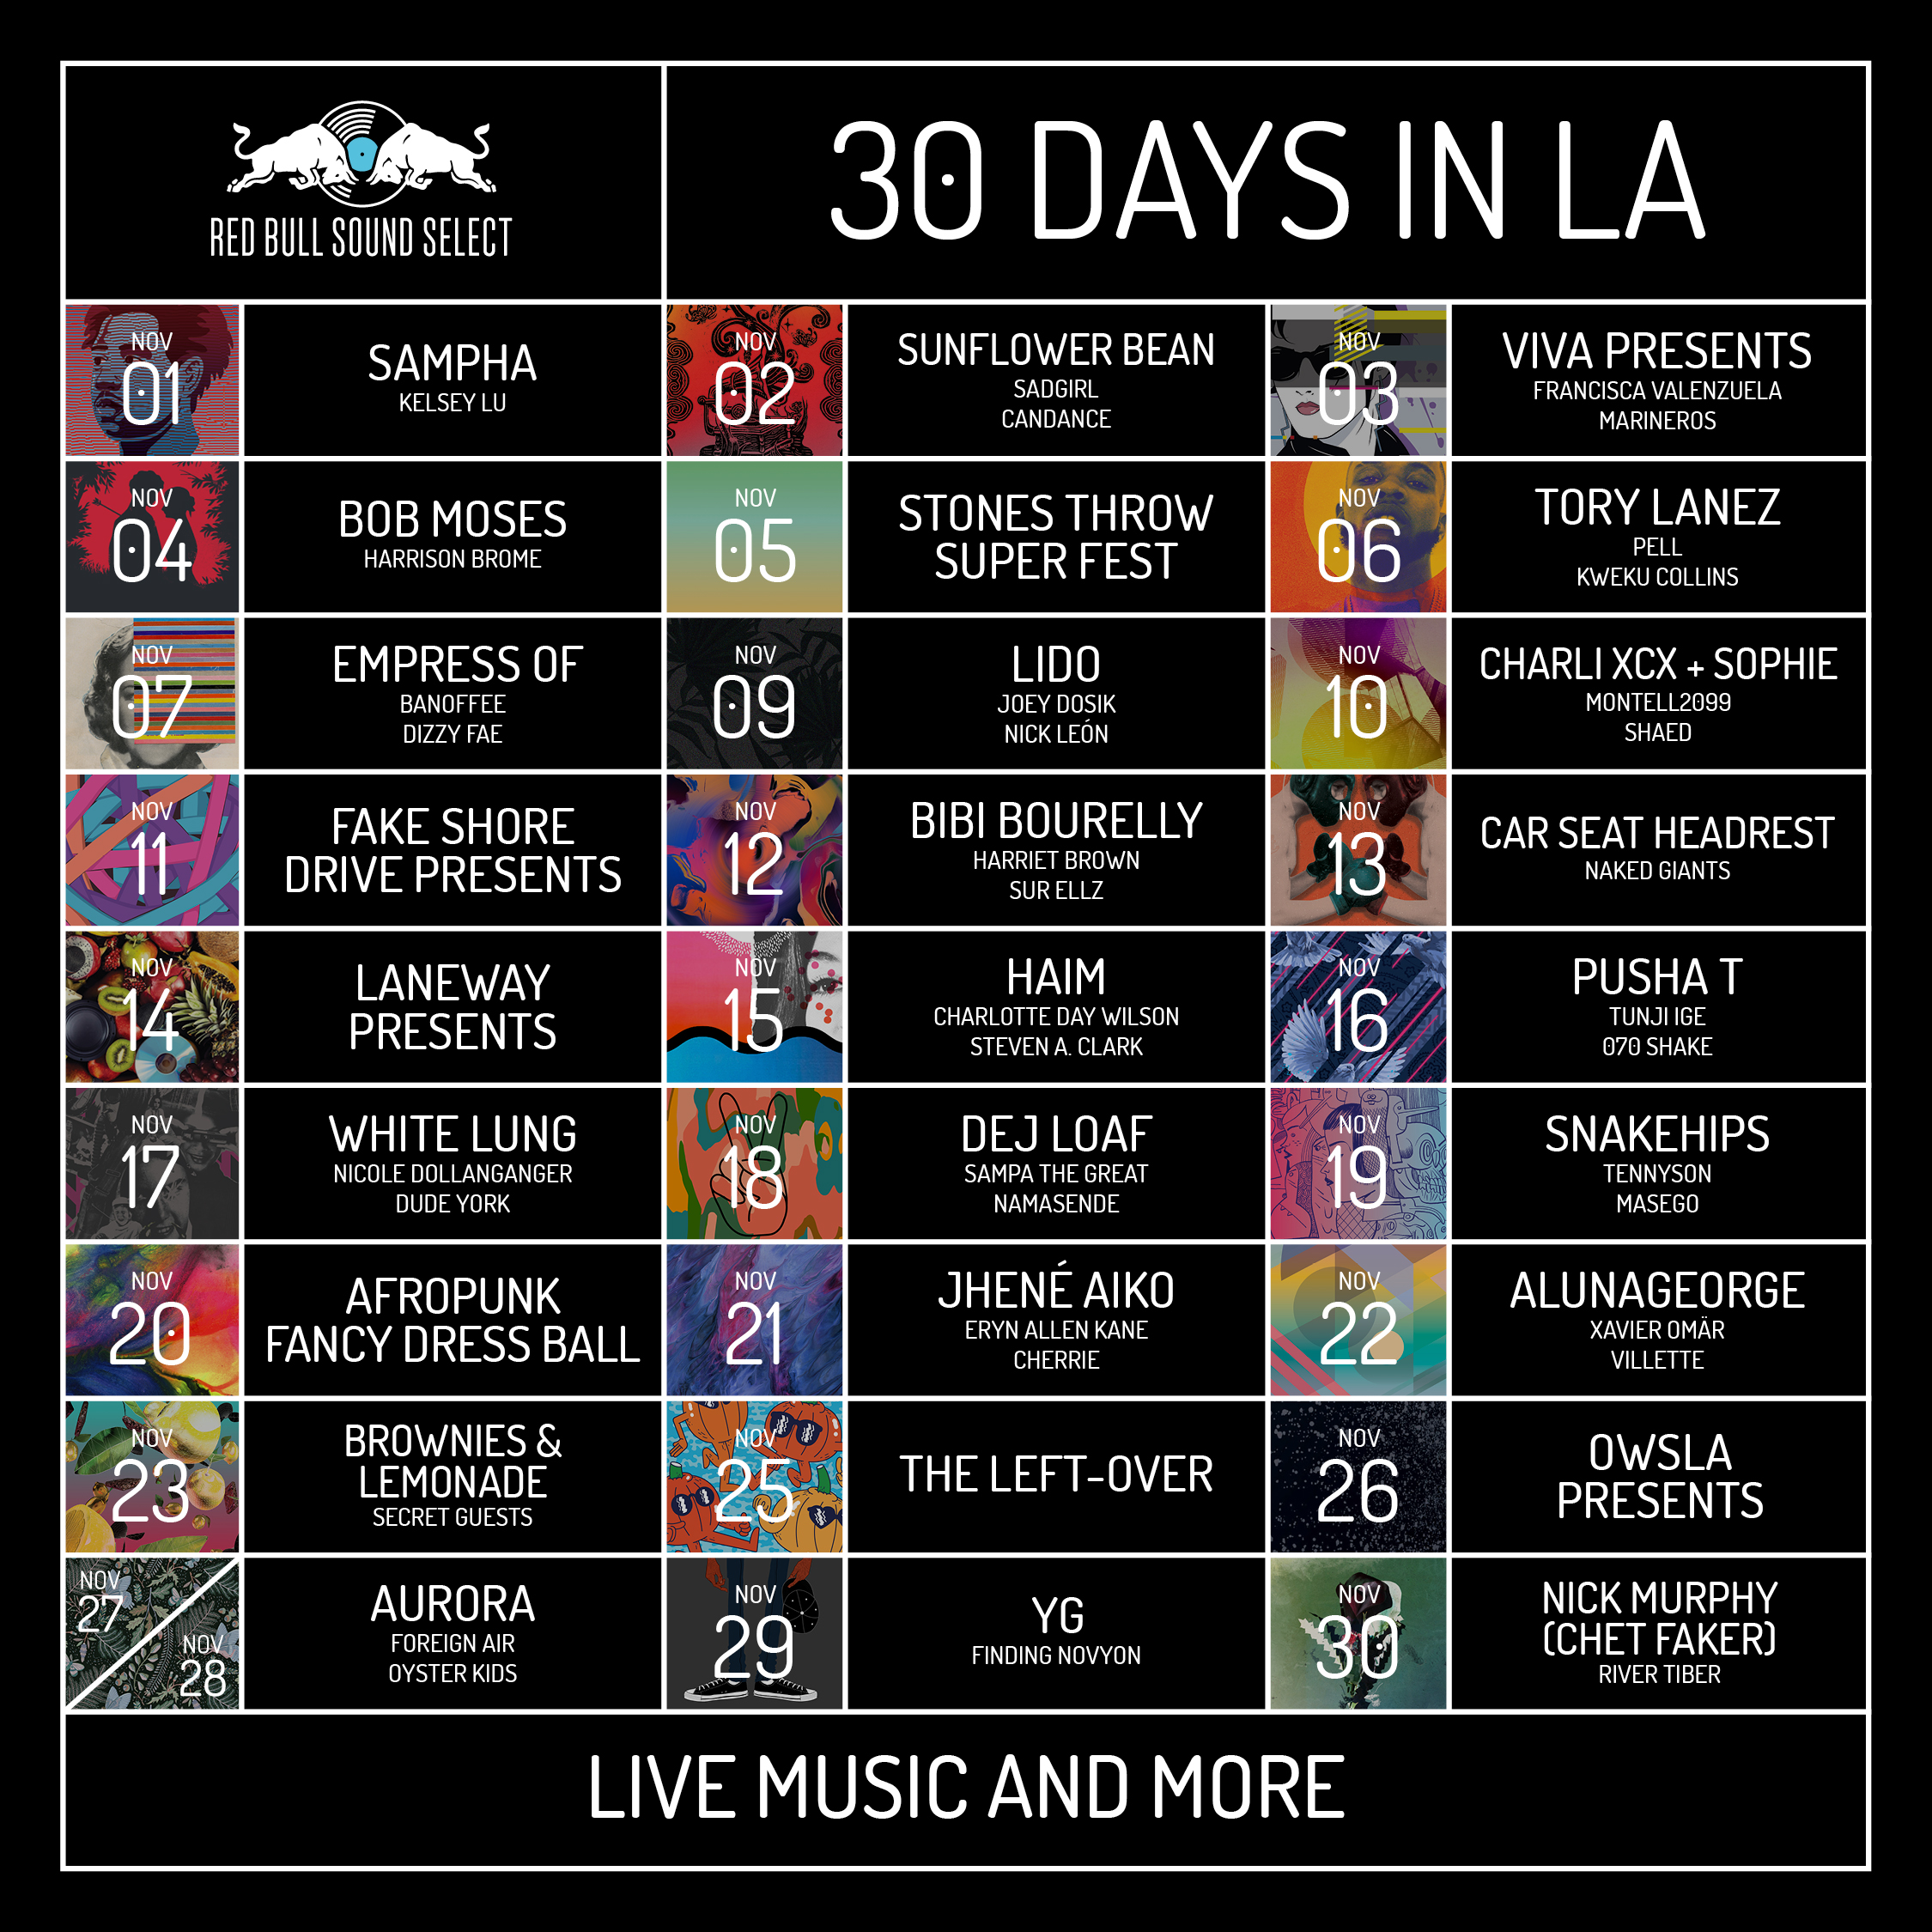 p 20160913 00047 hires jpeg 24bit rgb news Red Bull Sound Select announces 30 Days in LA lineup: HAIM, Pusha T, Charli XCX + Sophie